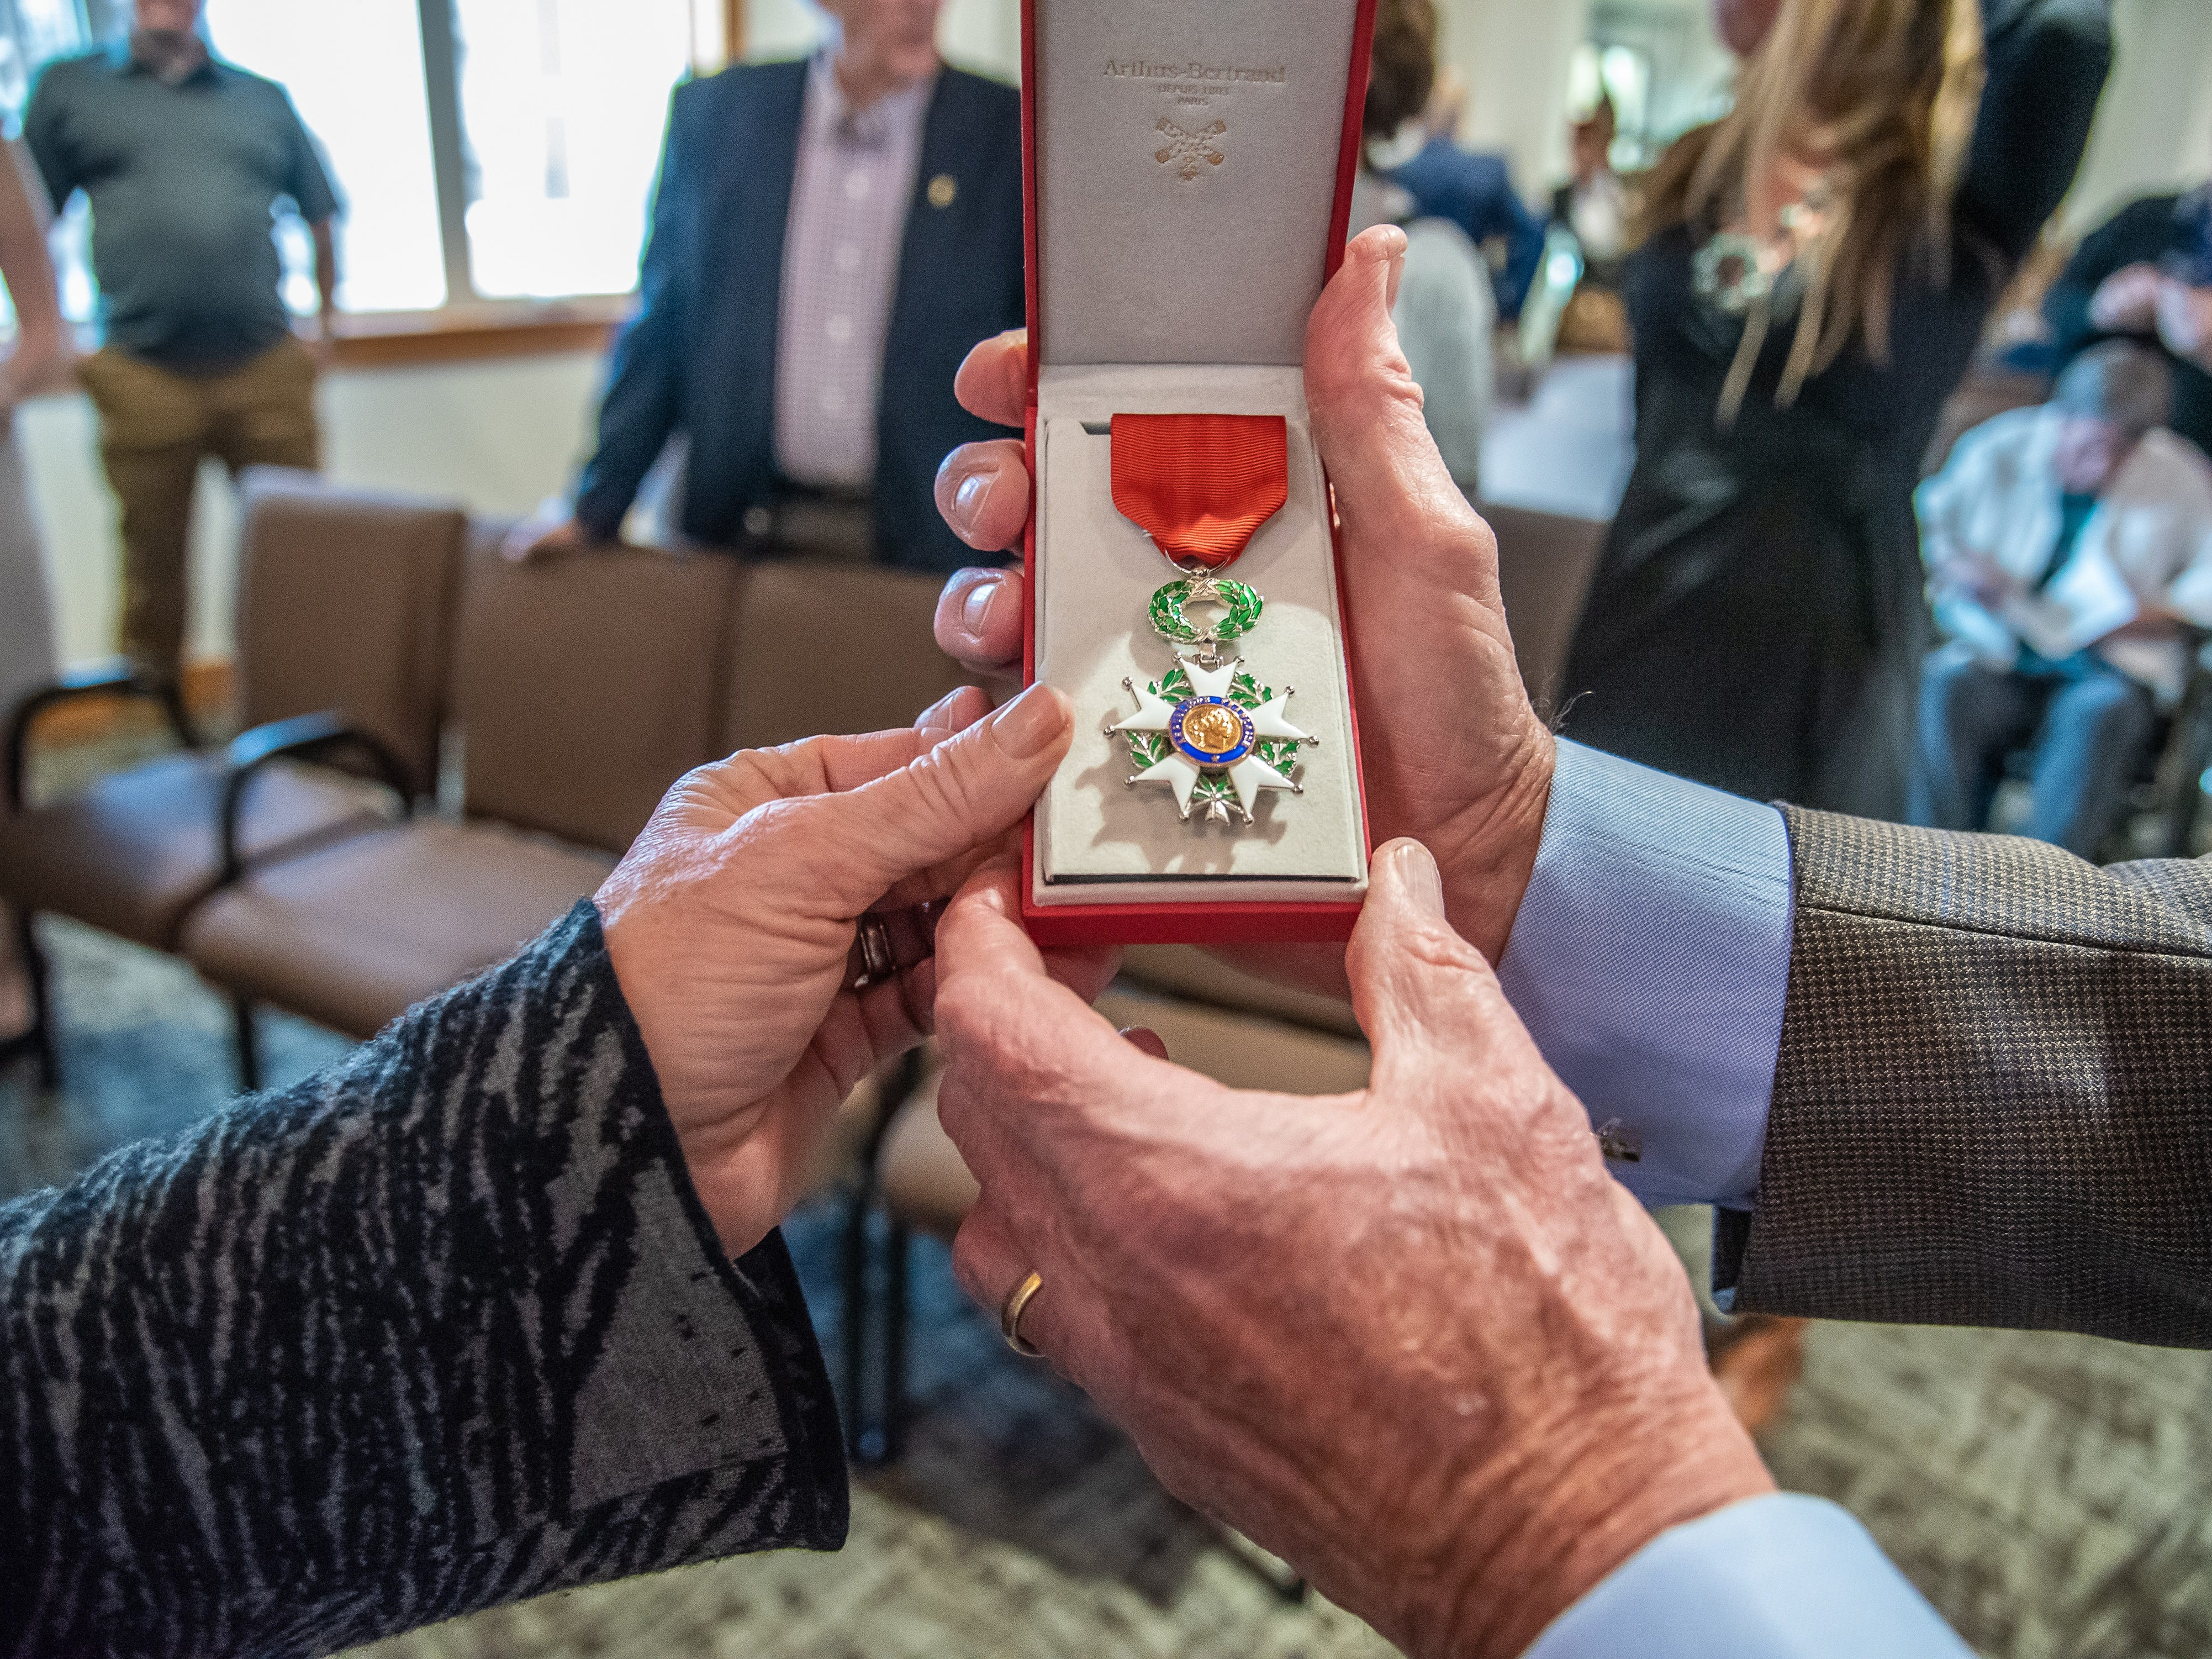 Ginger and Jack Graham display the French Legion of Honor award, given to Graham in honor of his father, a World War II veteran, at the conclusion of a ceremony on Monday, February 4, 2019,  at the Good Samaritan Water Valley Resort in Windsor.